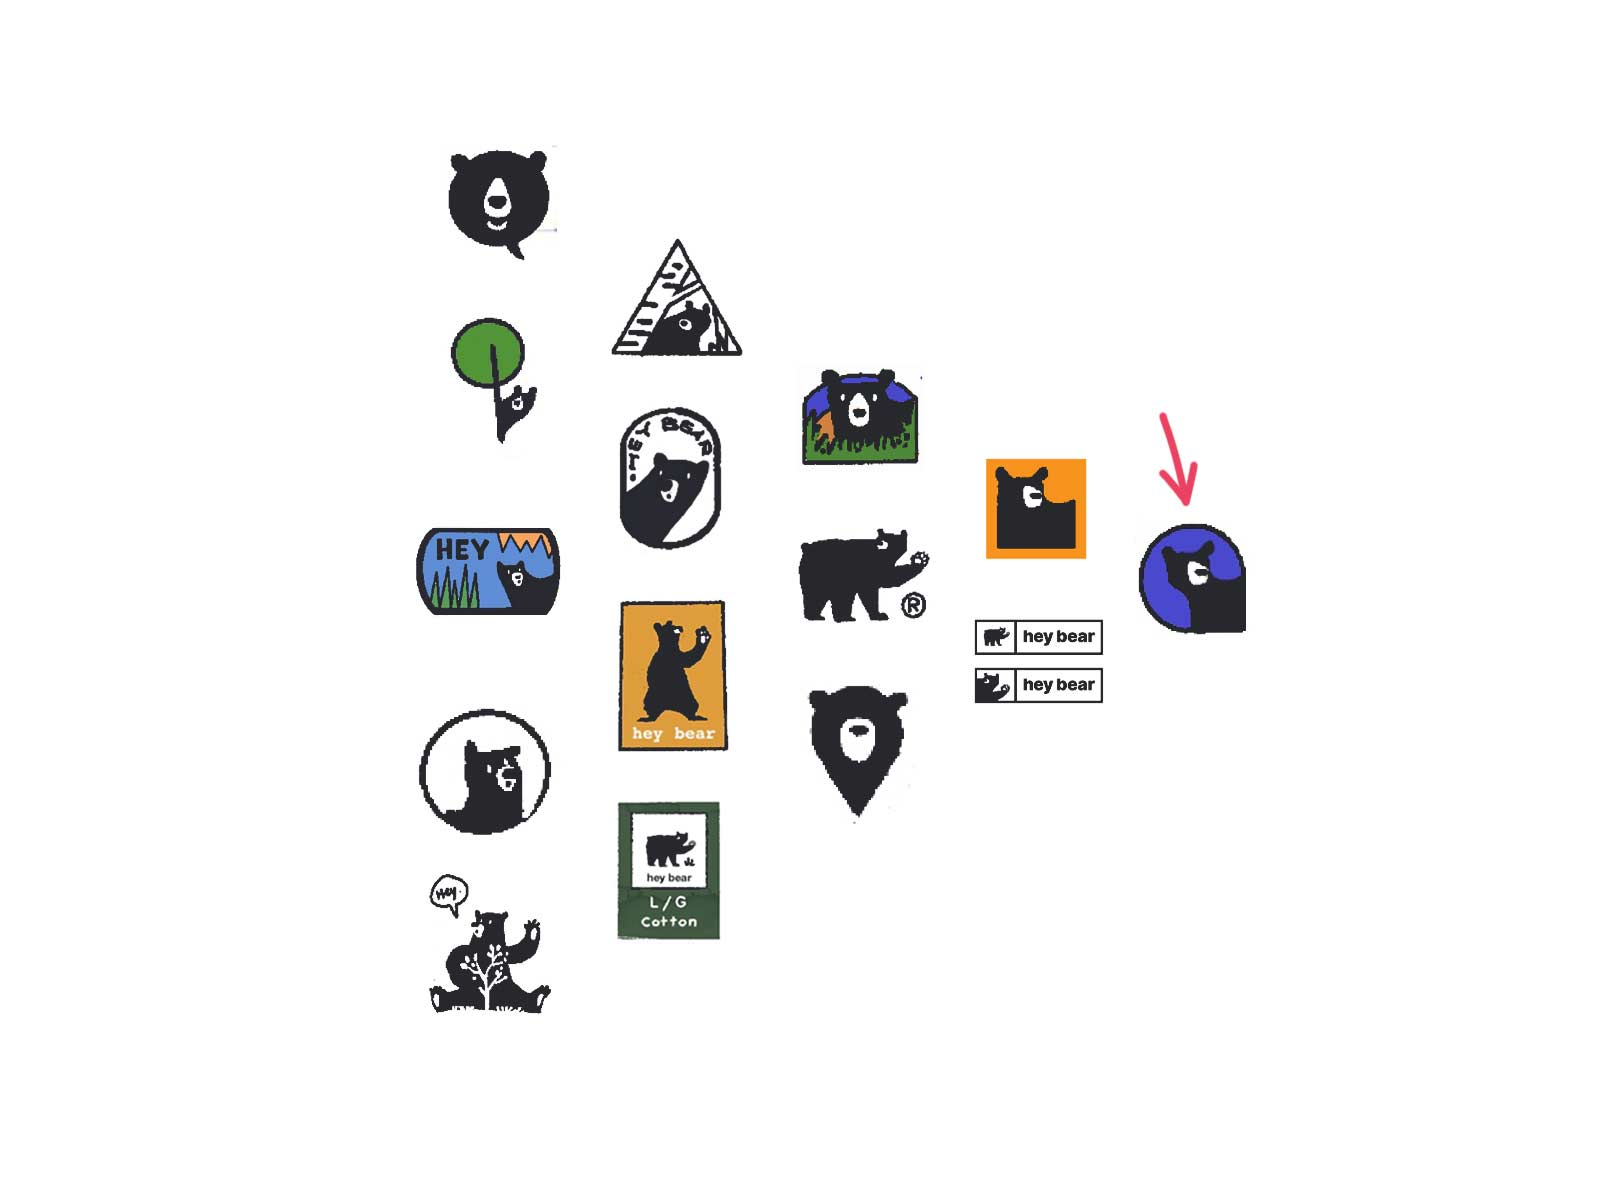 narrowing down the logo design for hey bear logo design project